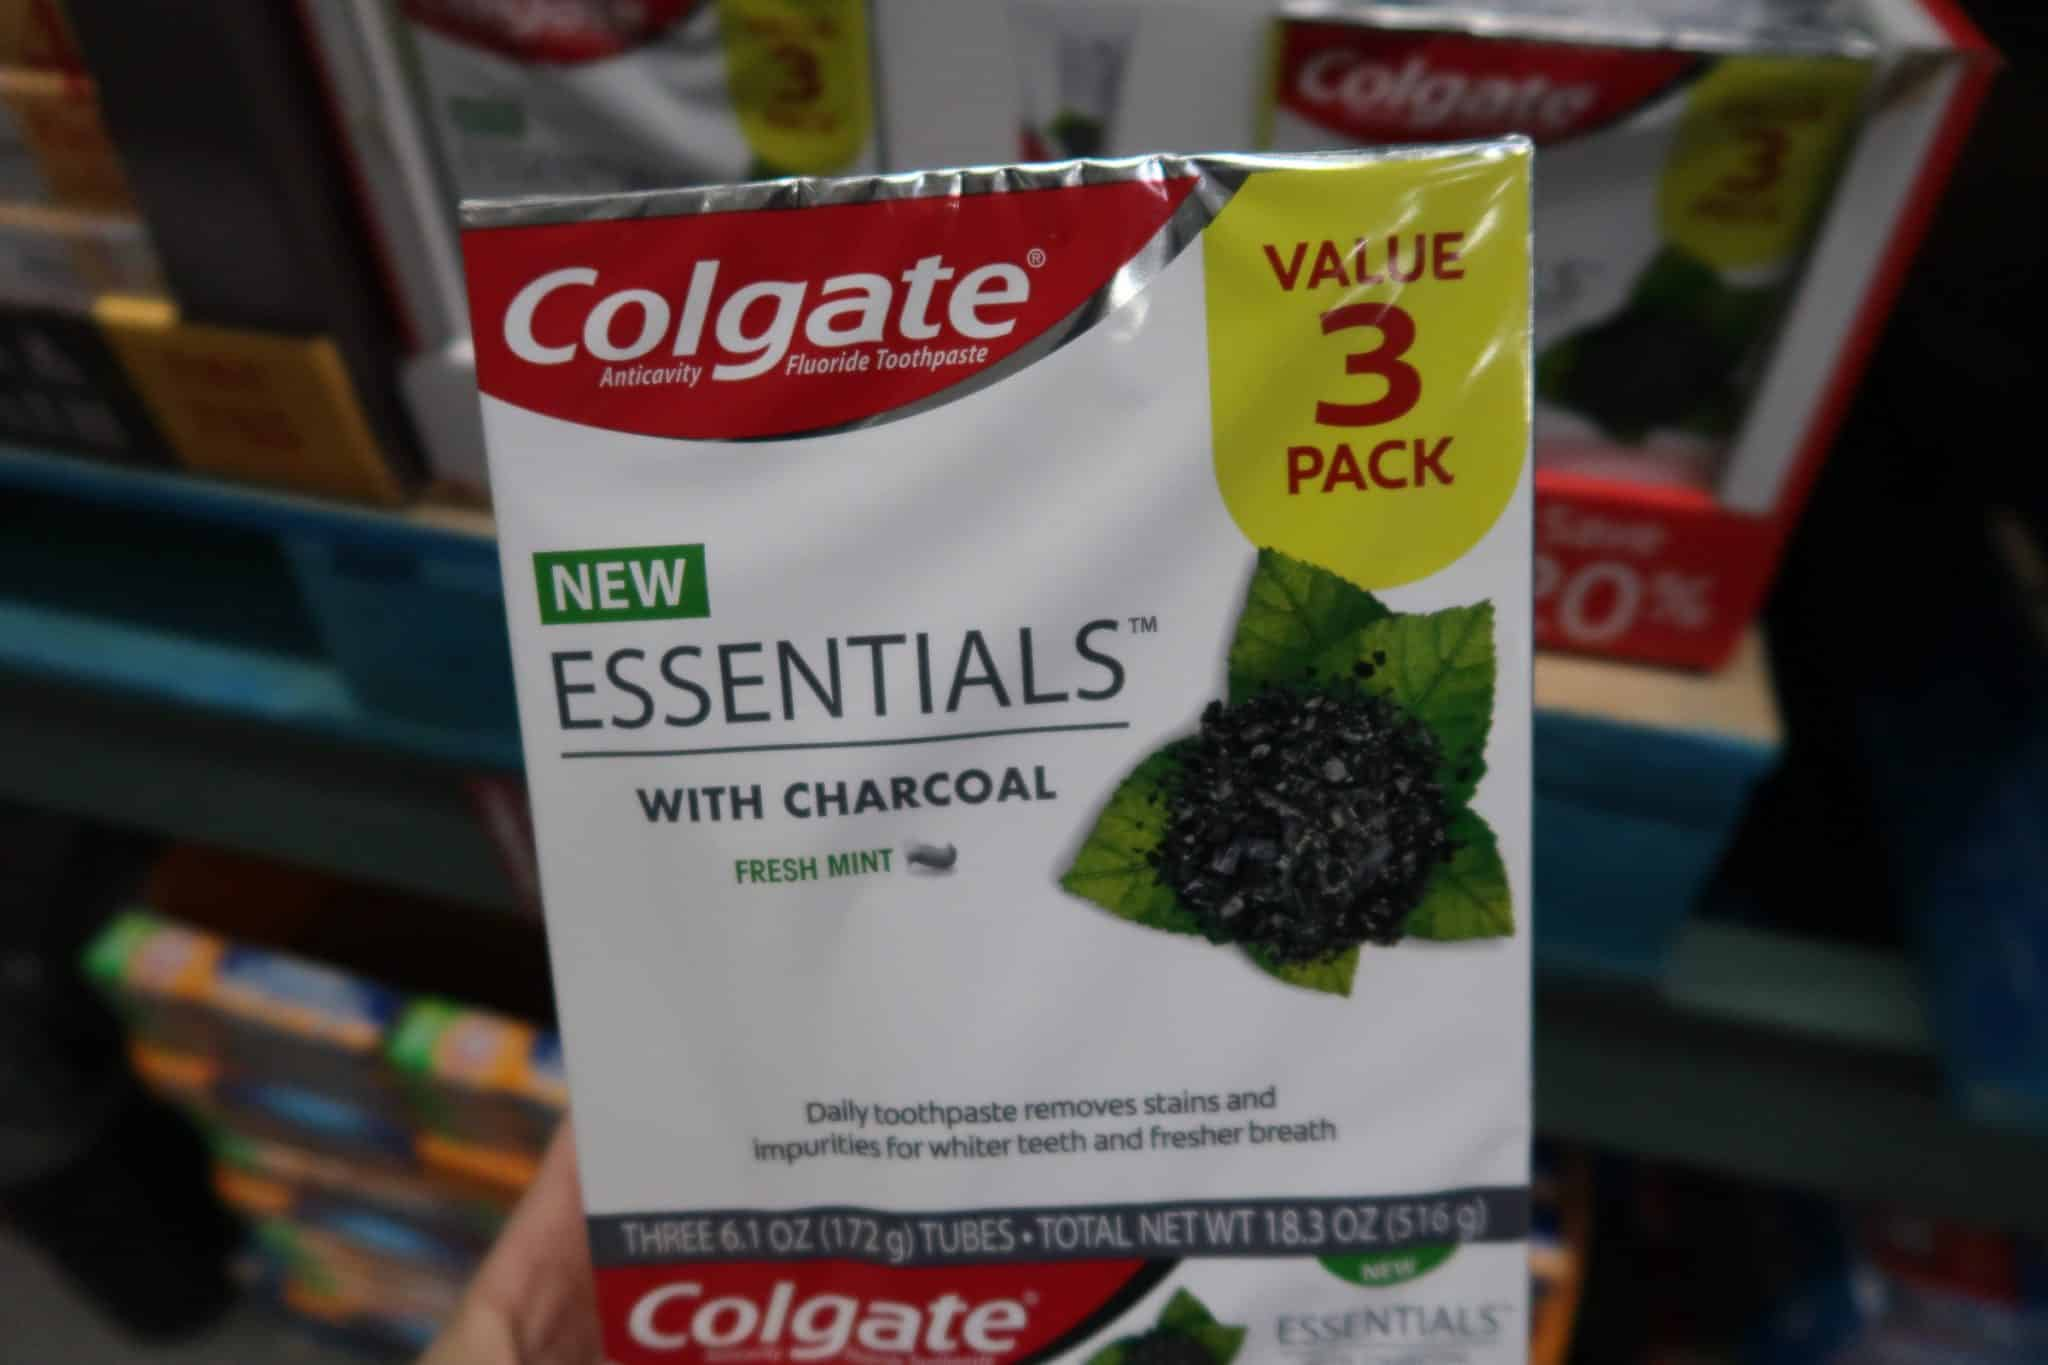 NEW Colgate Essentials Charcoal Toothpaste + Print a Coupon